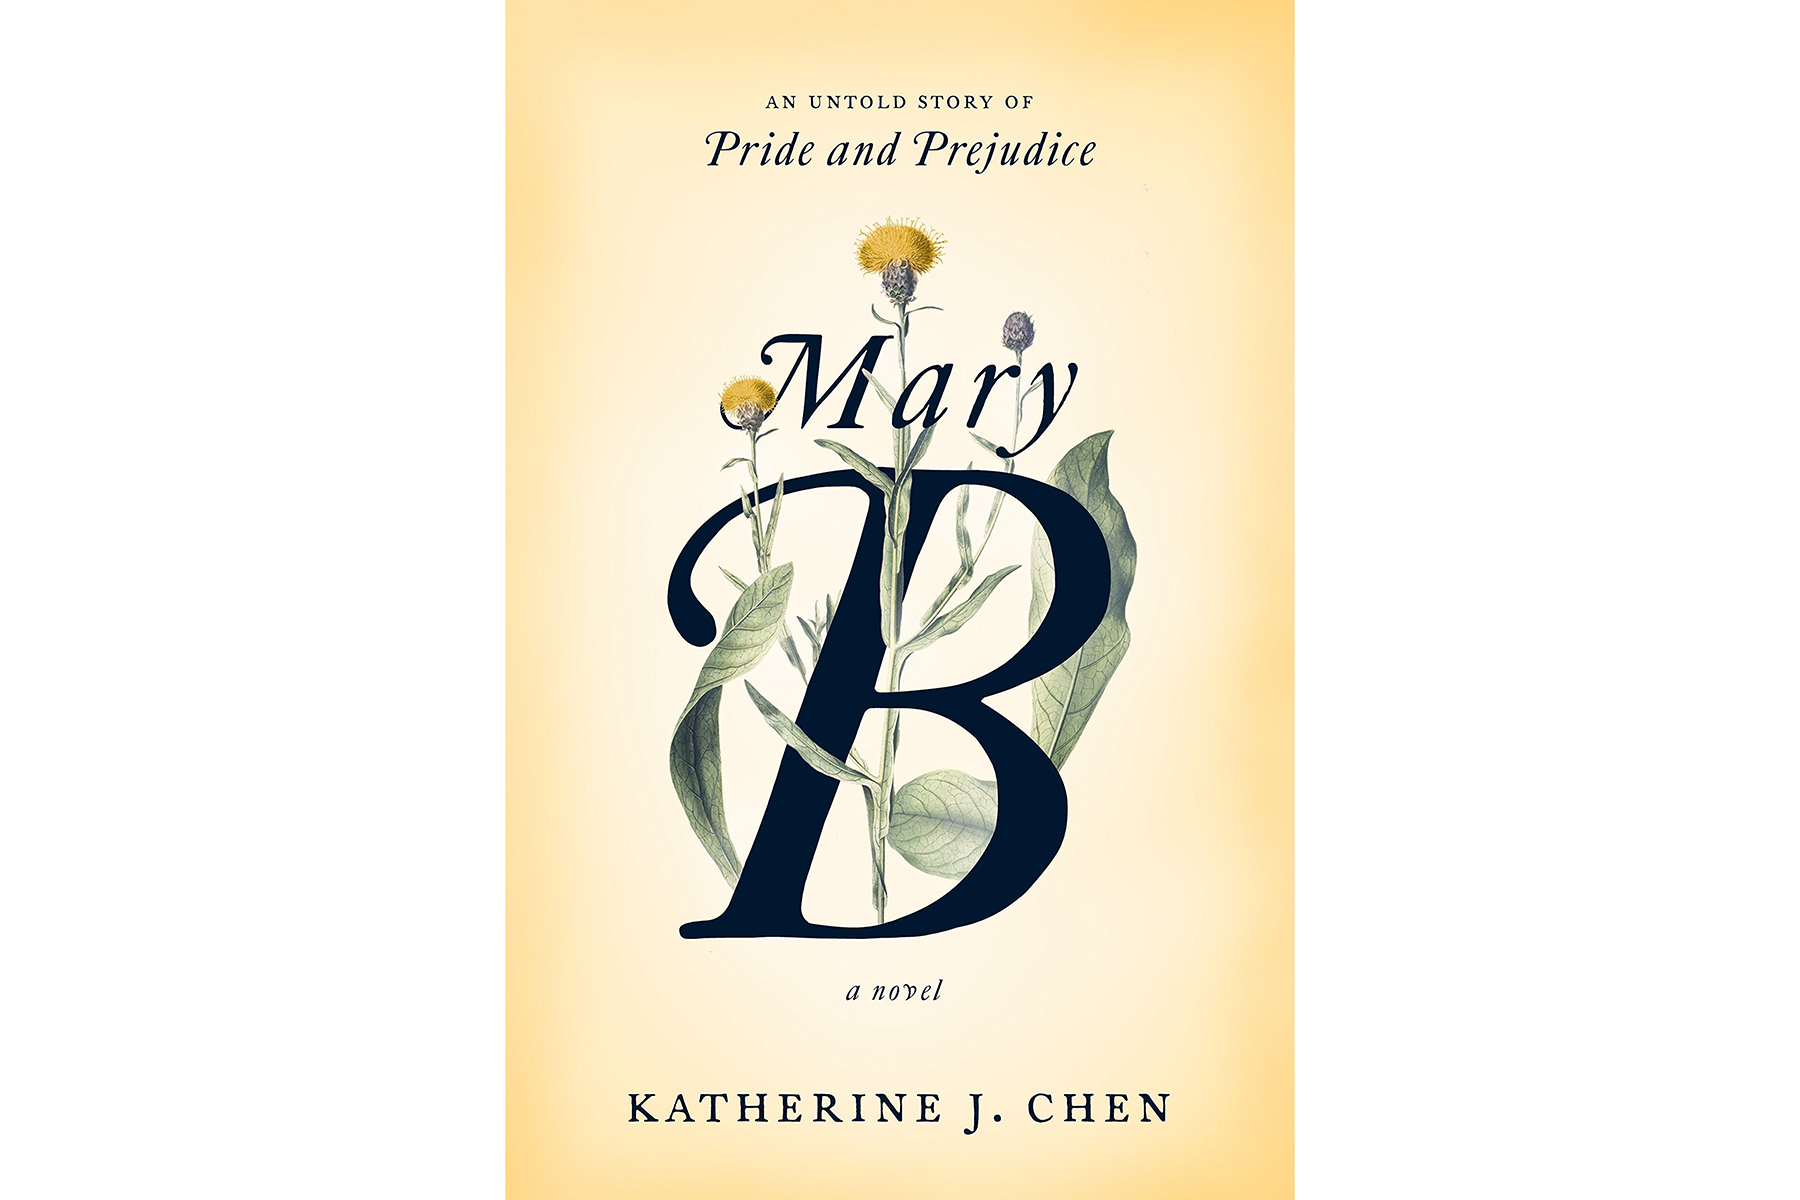 Mary B, by Katherine J. Chen